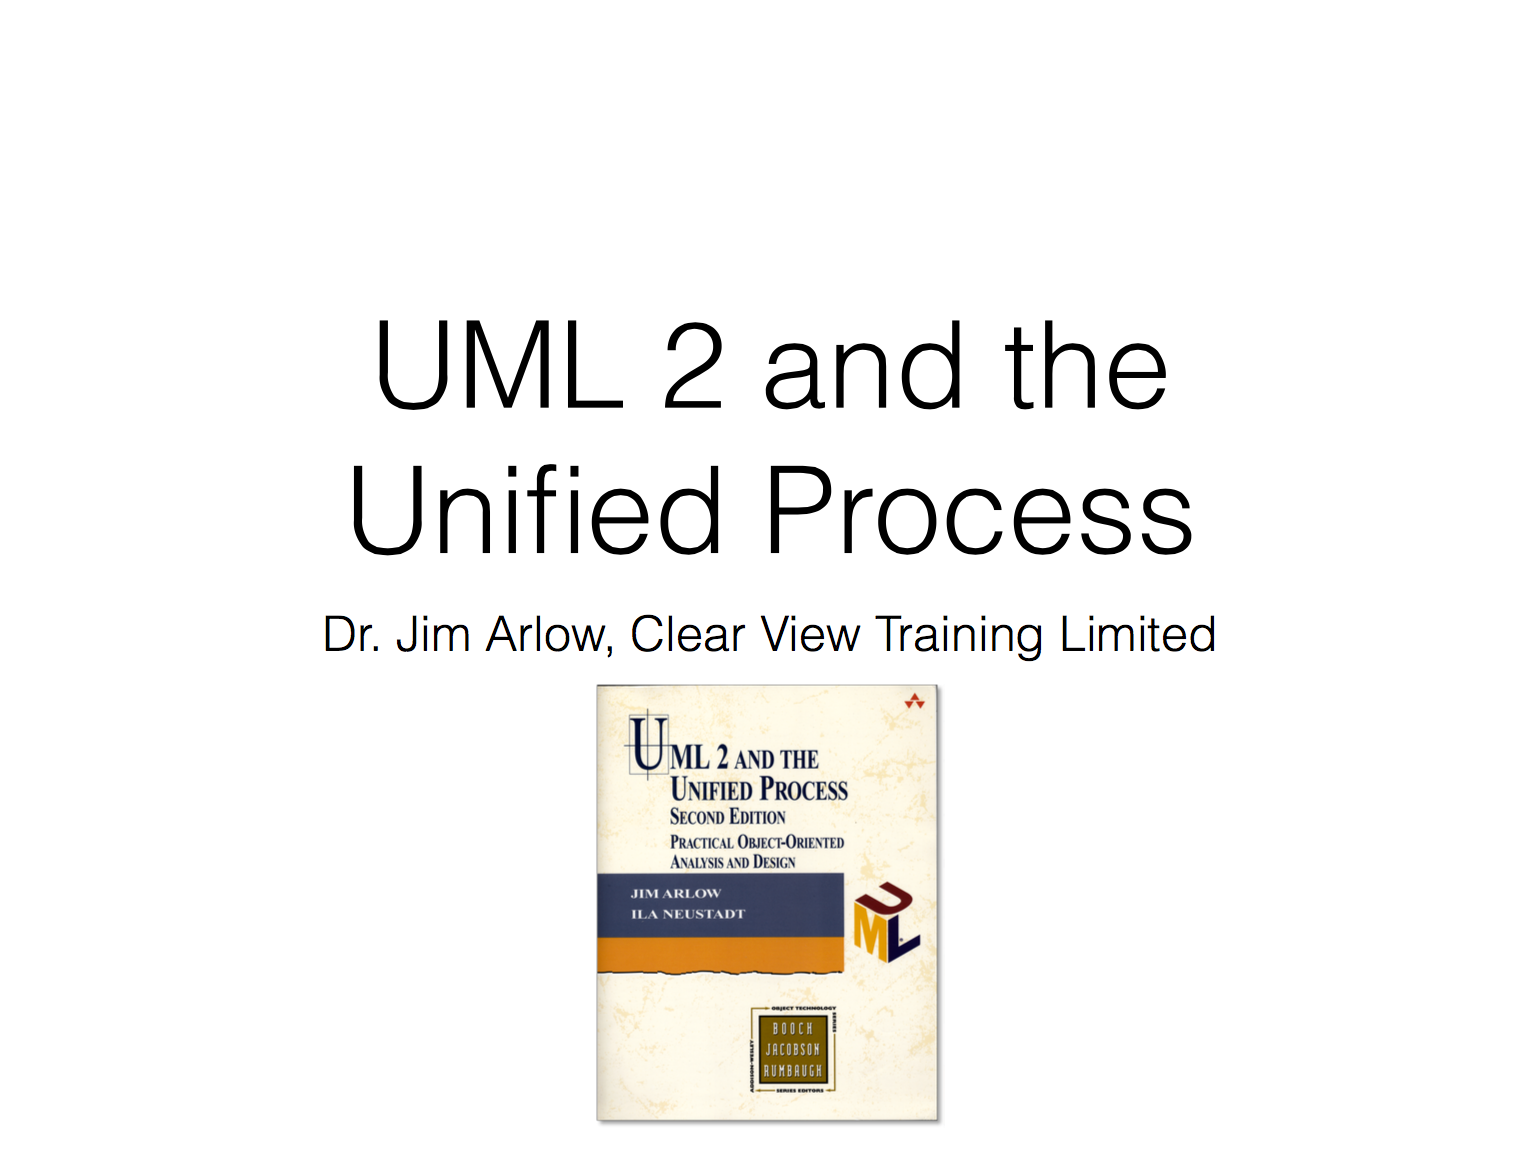 UML 2 and the Unified Process Training Course